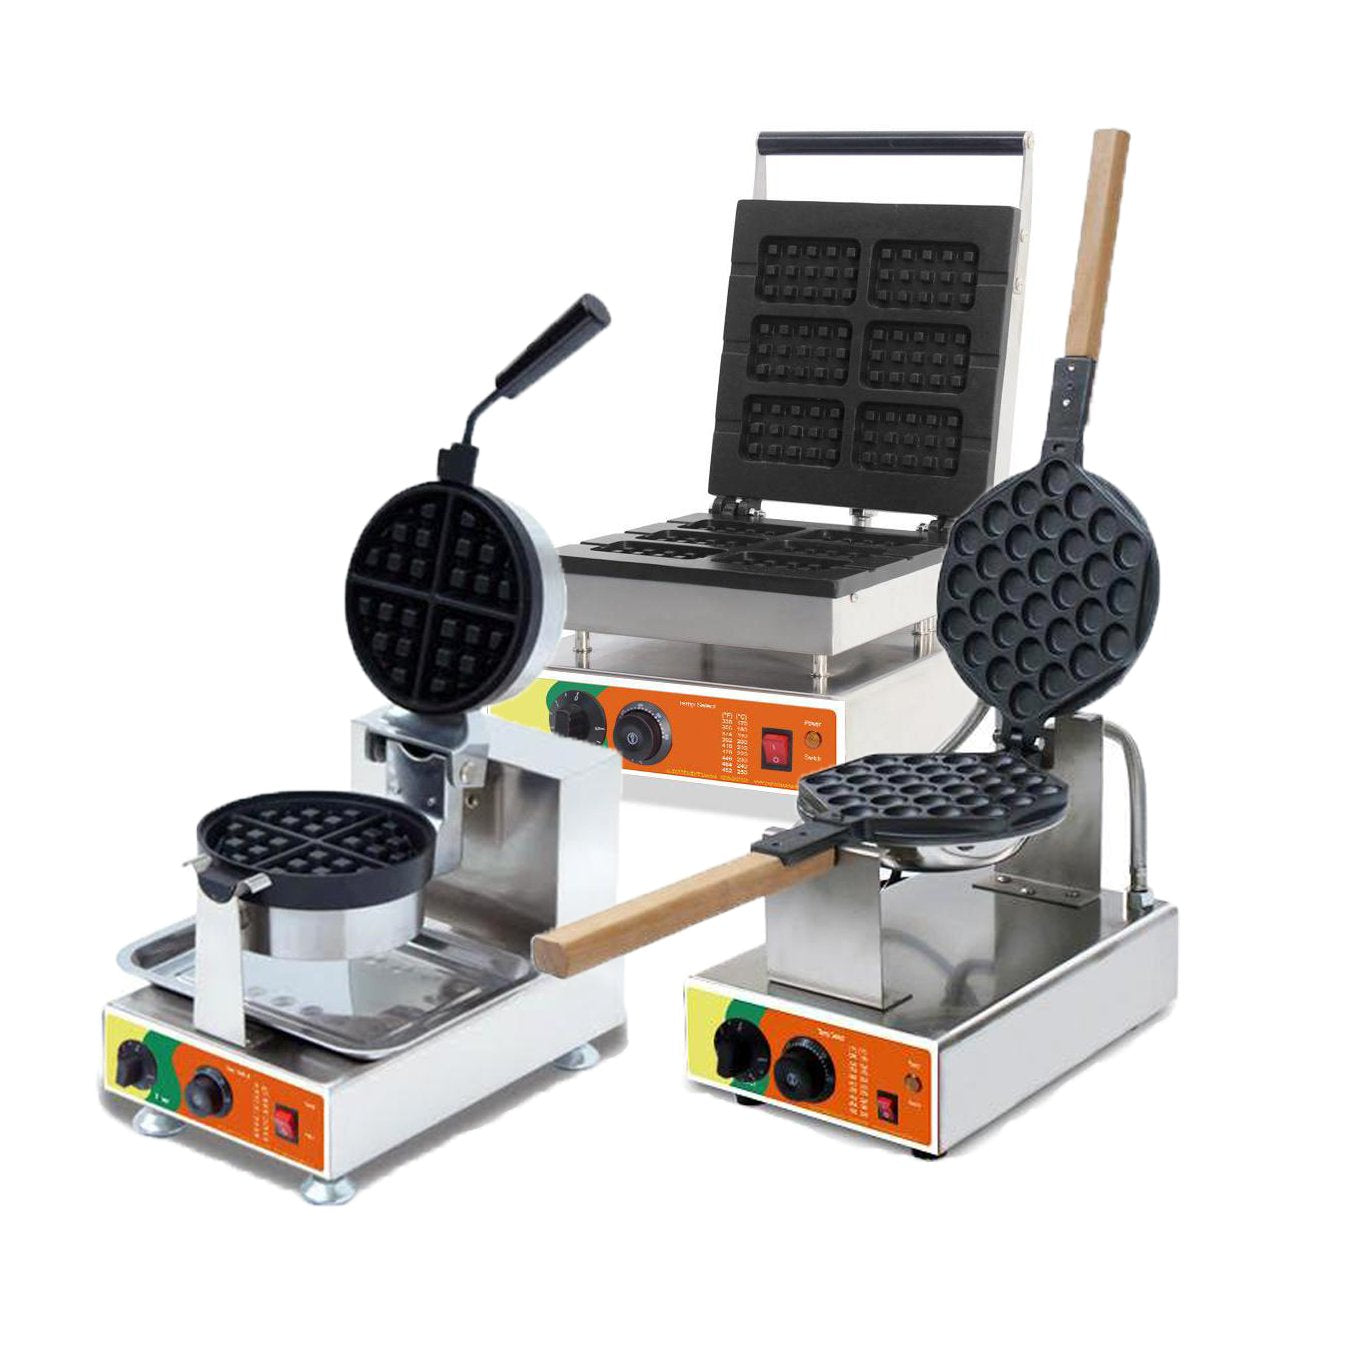 Waffle Machines Deal - 3 units for £995.00 inc. VAT & Delivery